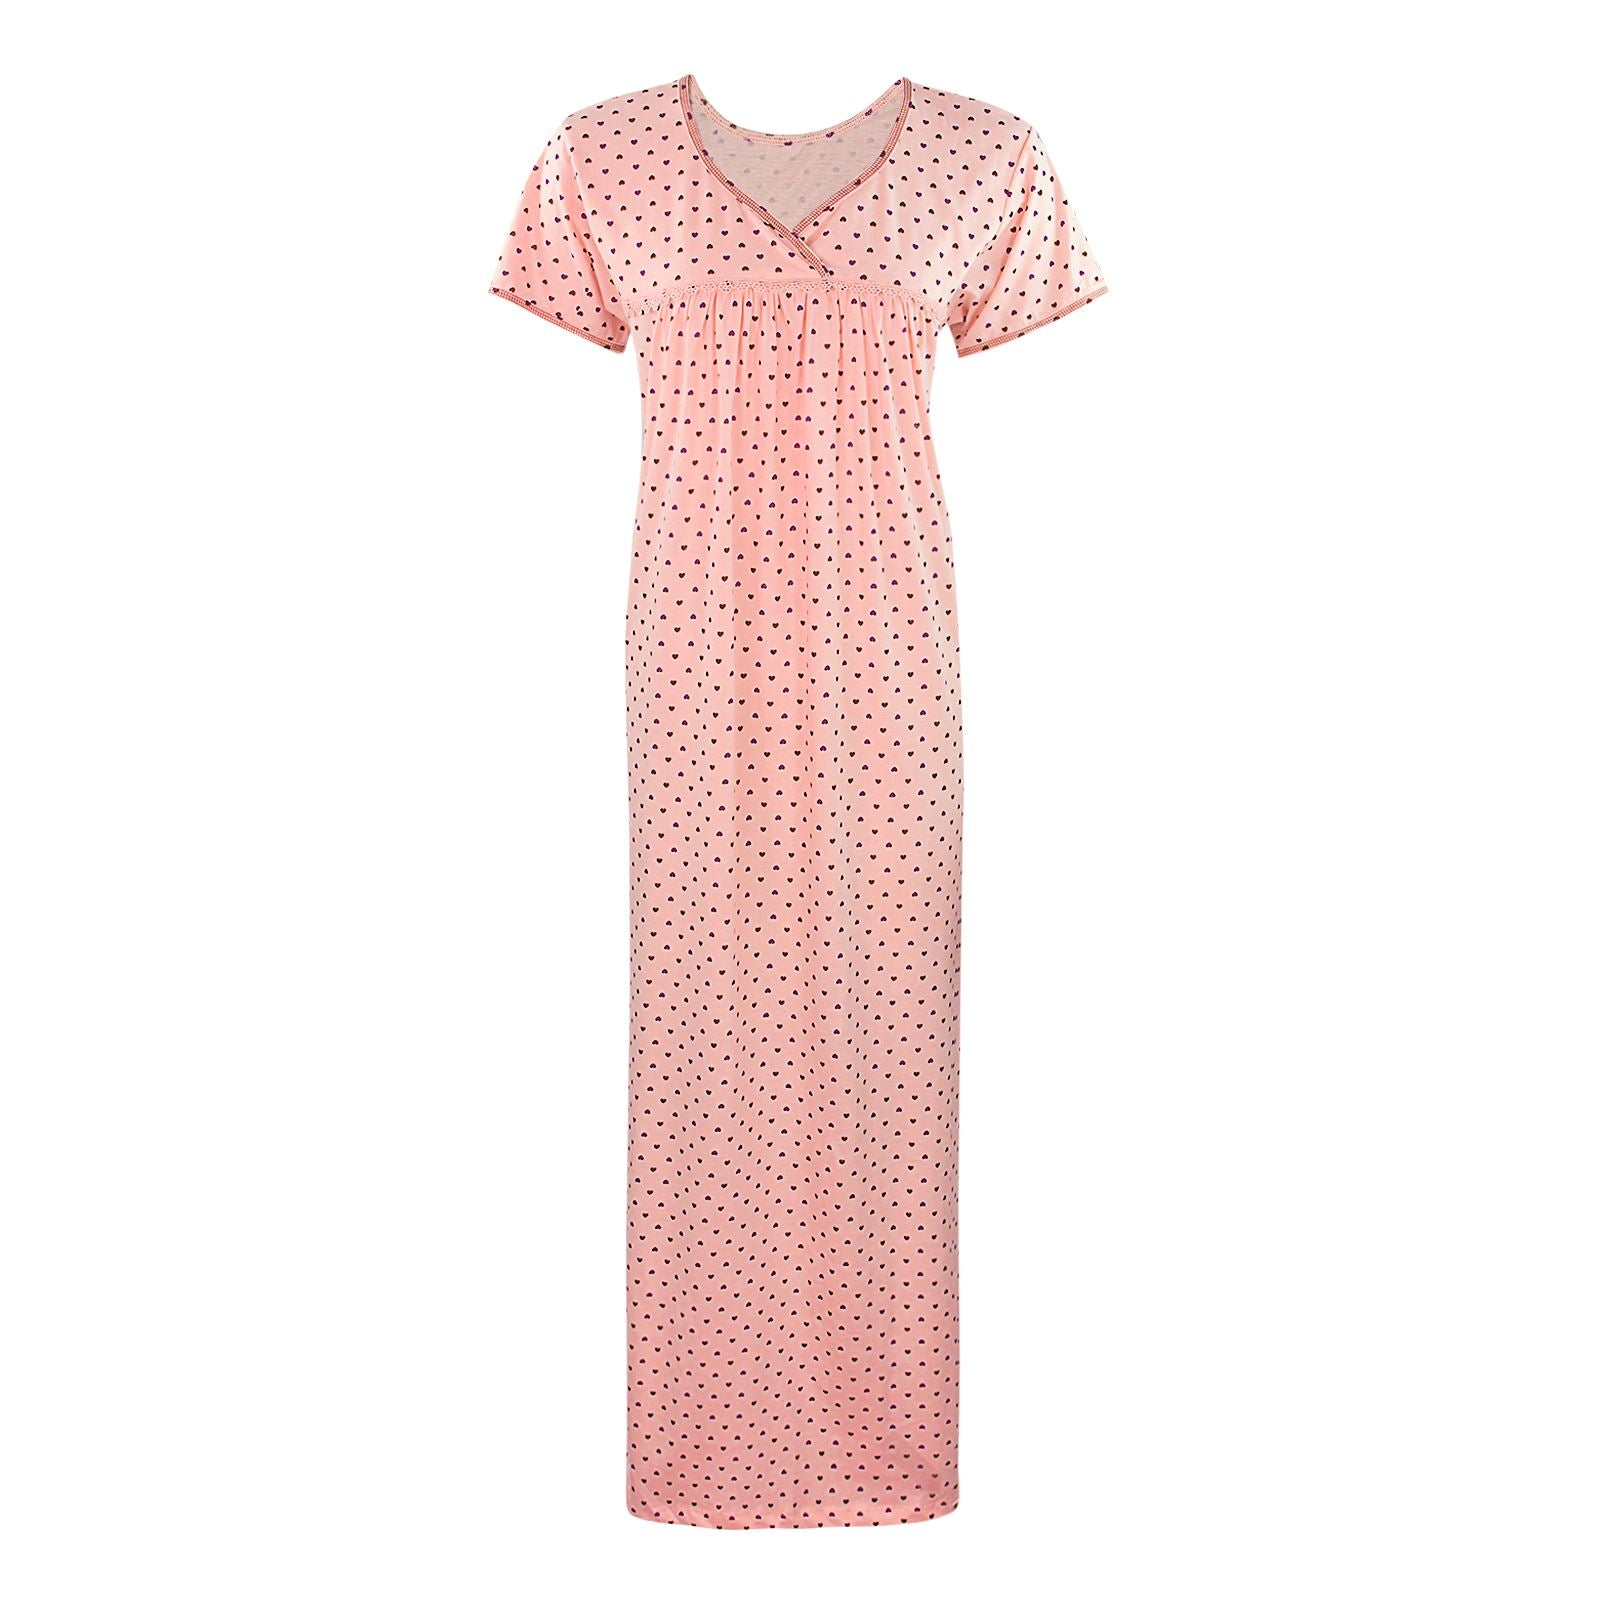 Color: Pink 100% Cotton Heart Print Long Nightie Size: One Size